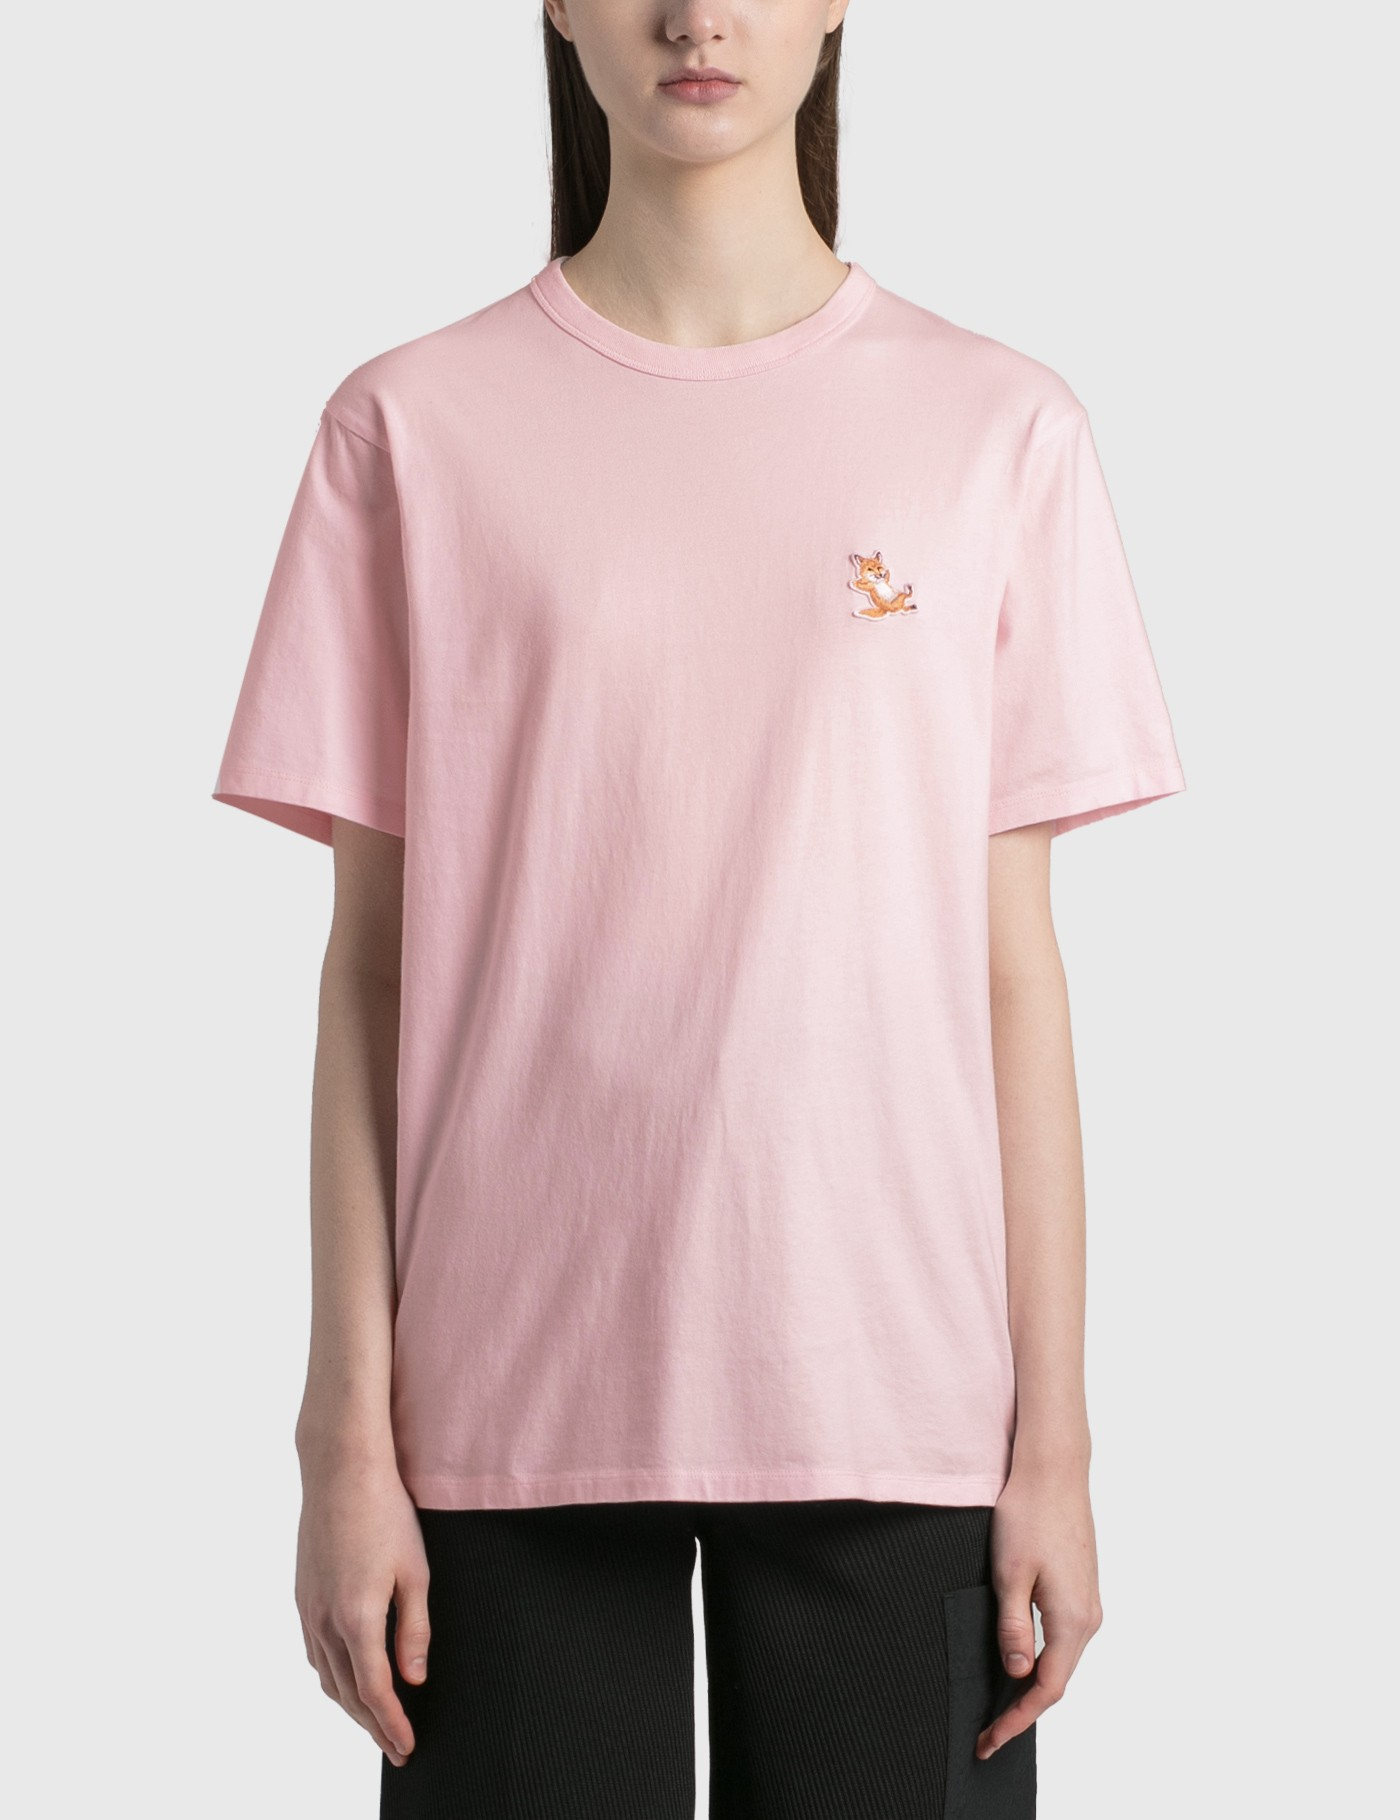 Maison Kitsuné CHILLAX FOX PATCH CLASSIC T-SHIRT